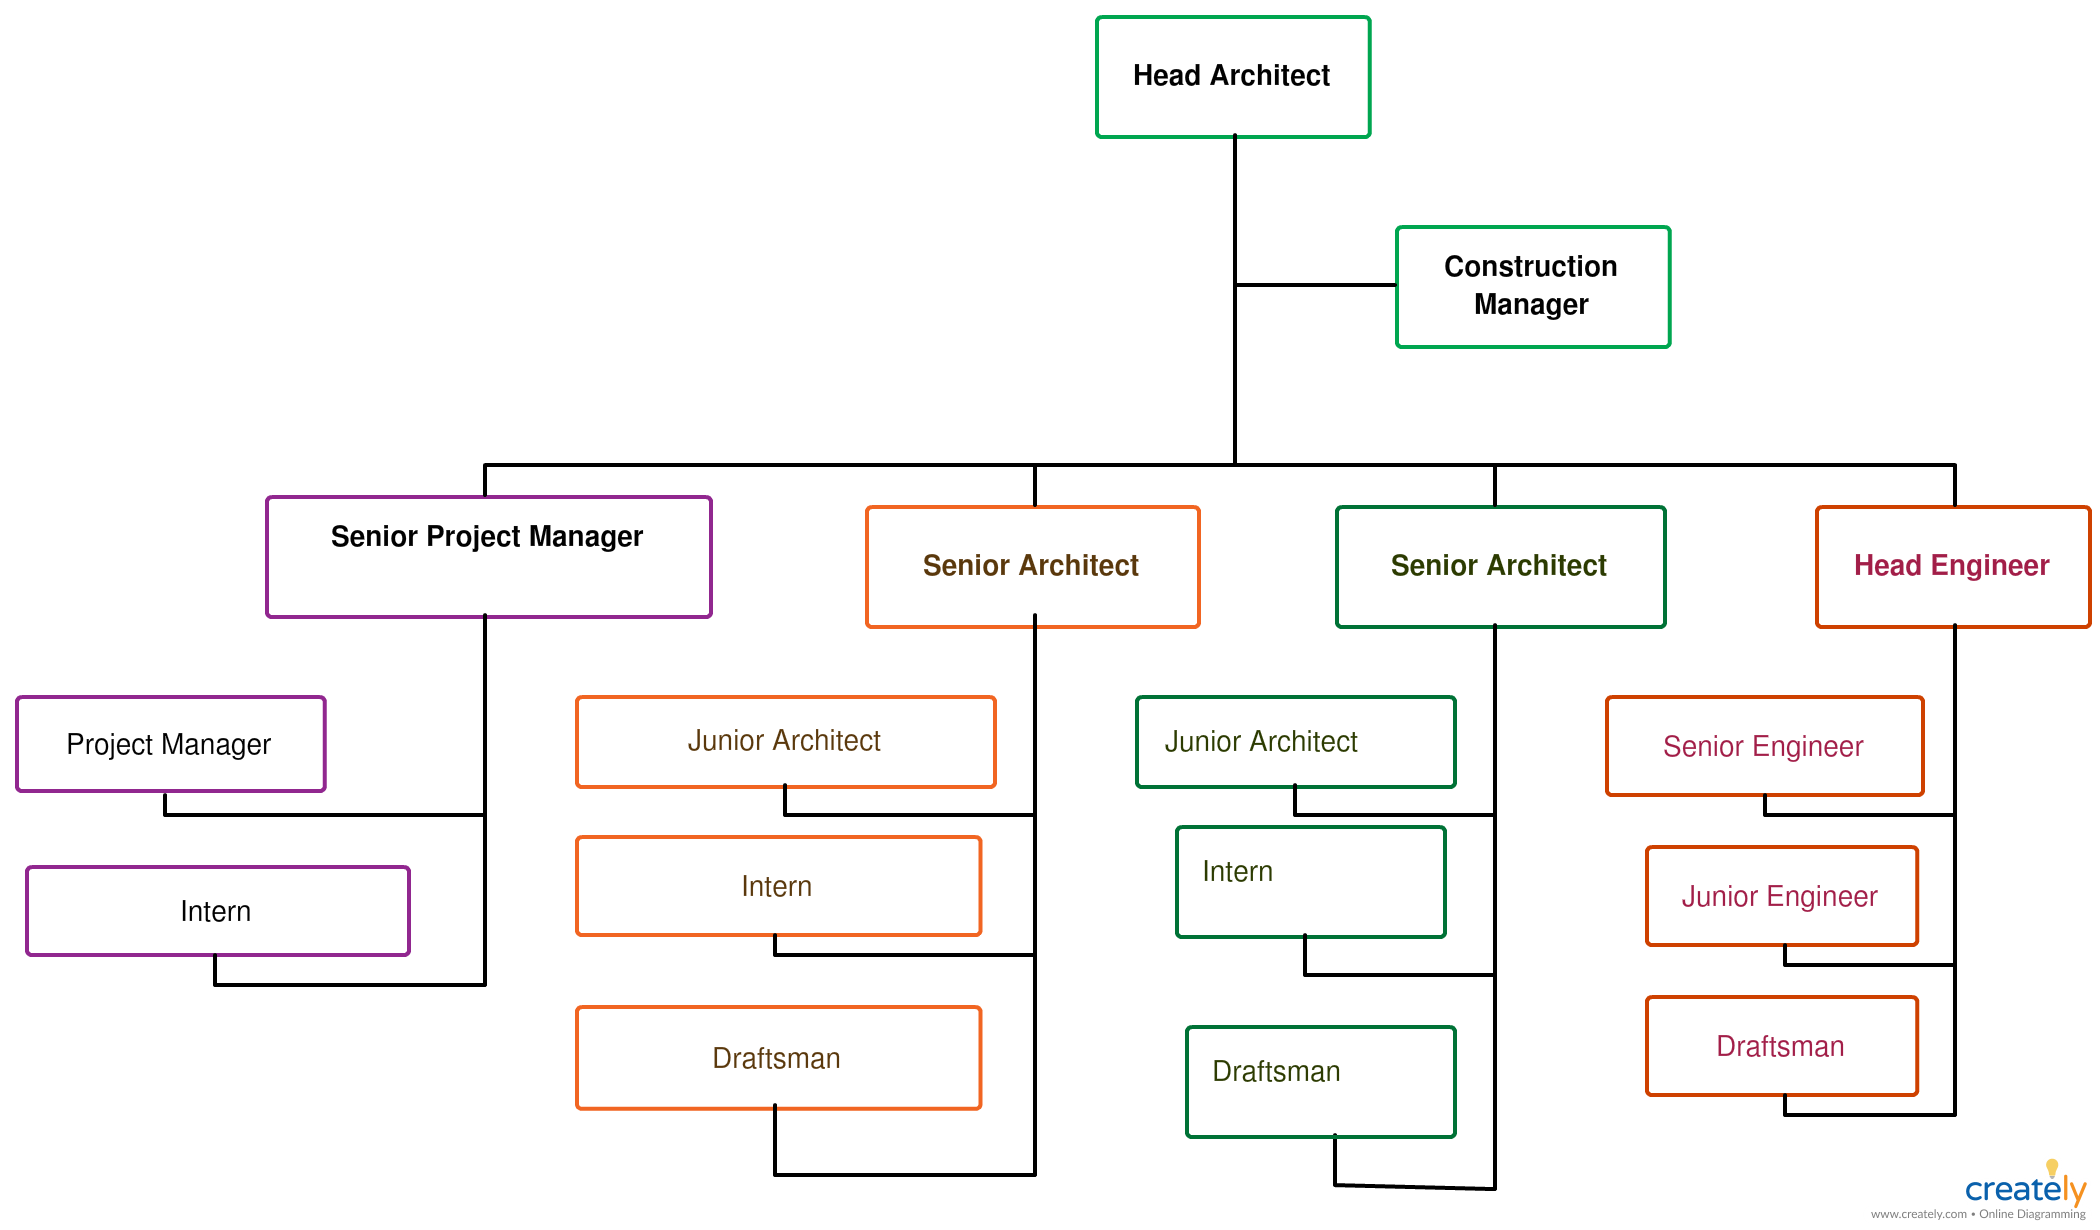 Organization Chart of Architecture Firm You can edit